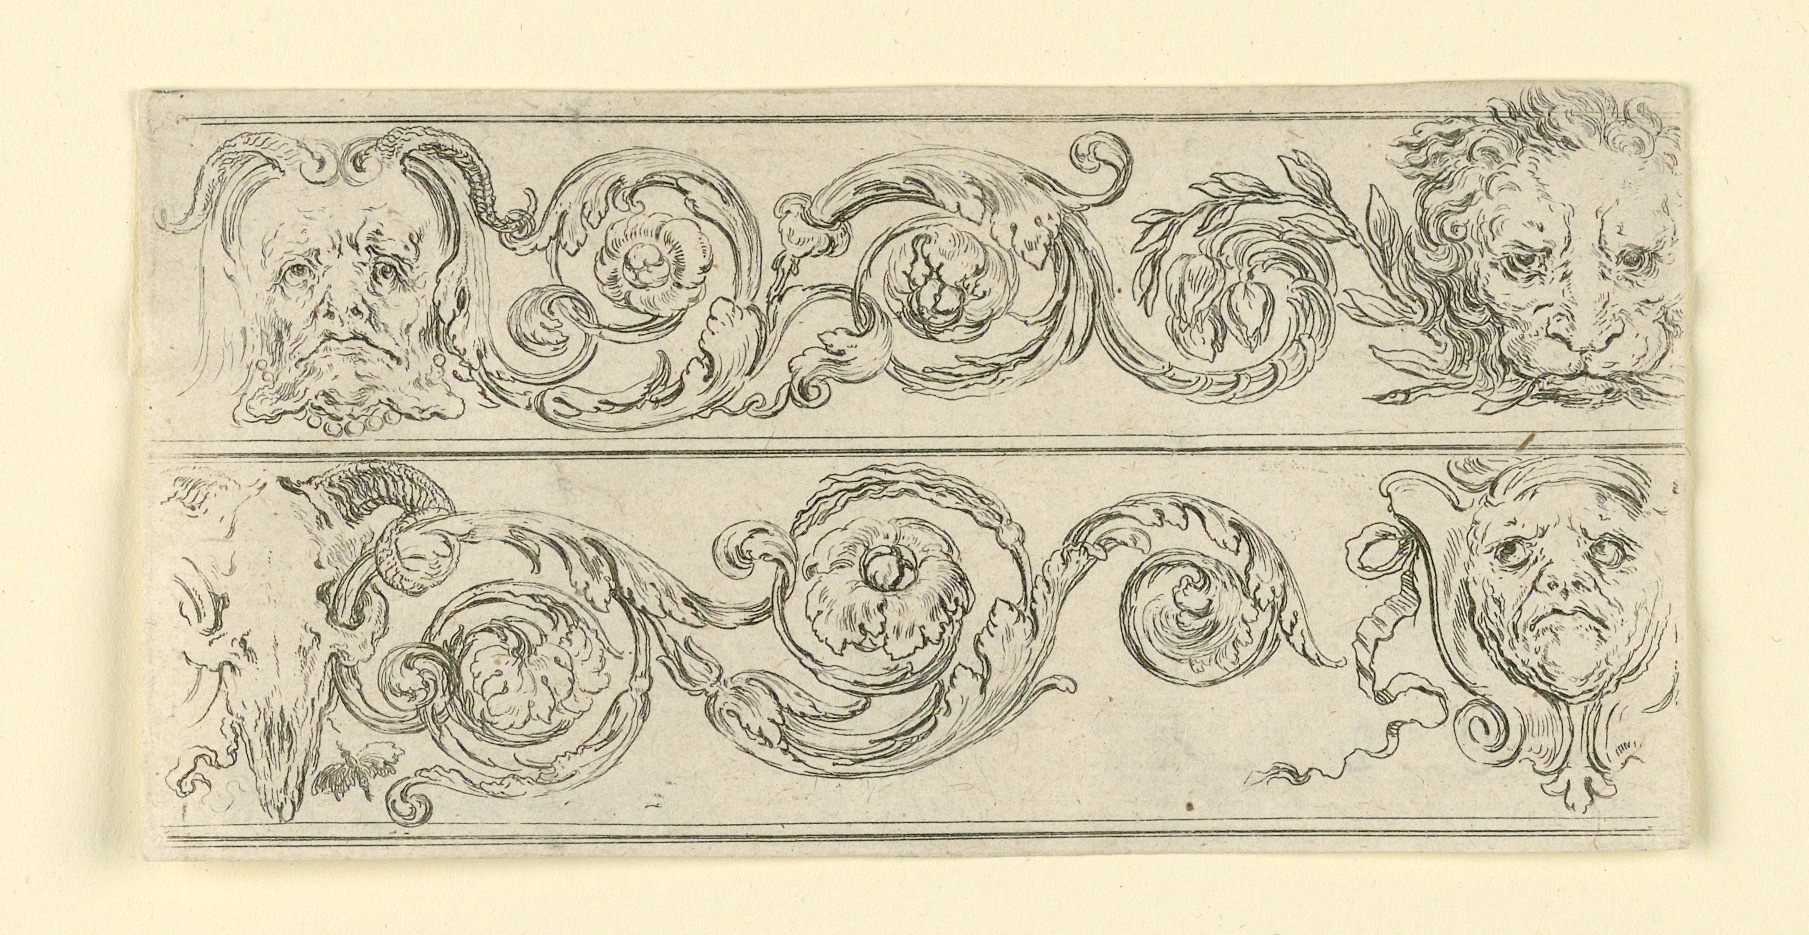 Plate from Frises, Feuillages et Grotesques (Friezes, Foliage and Grotesques)